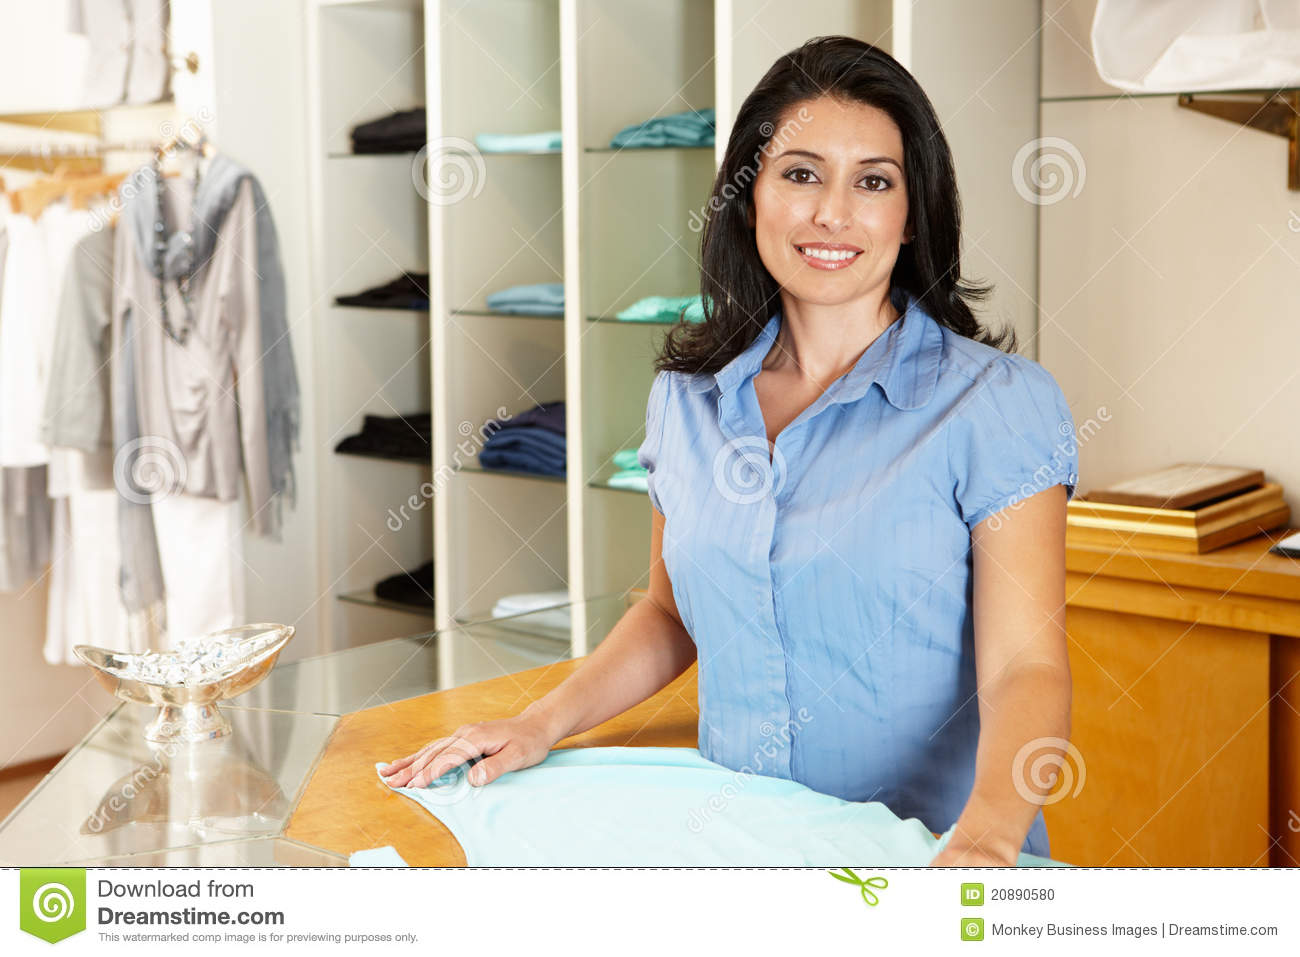 DownloadCancelClose. View all. Hispanic Woman Shopping In Clothing Store